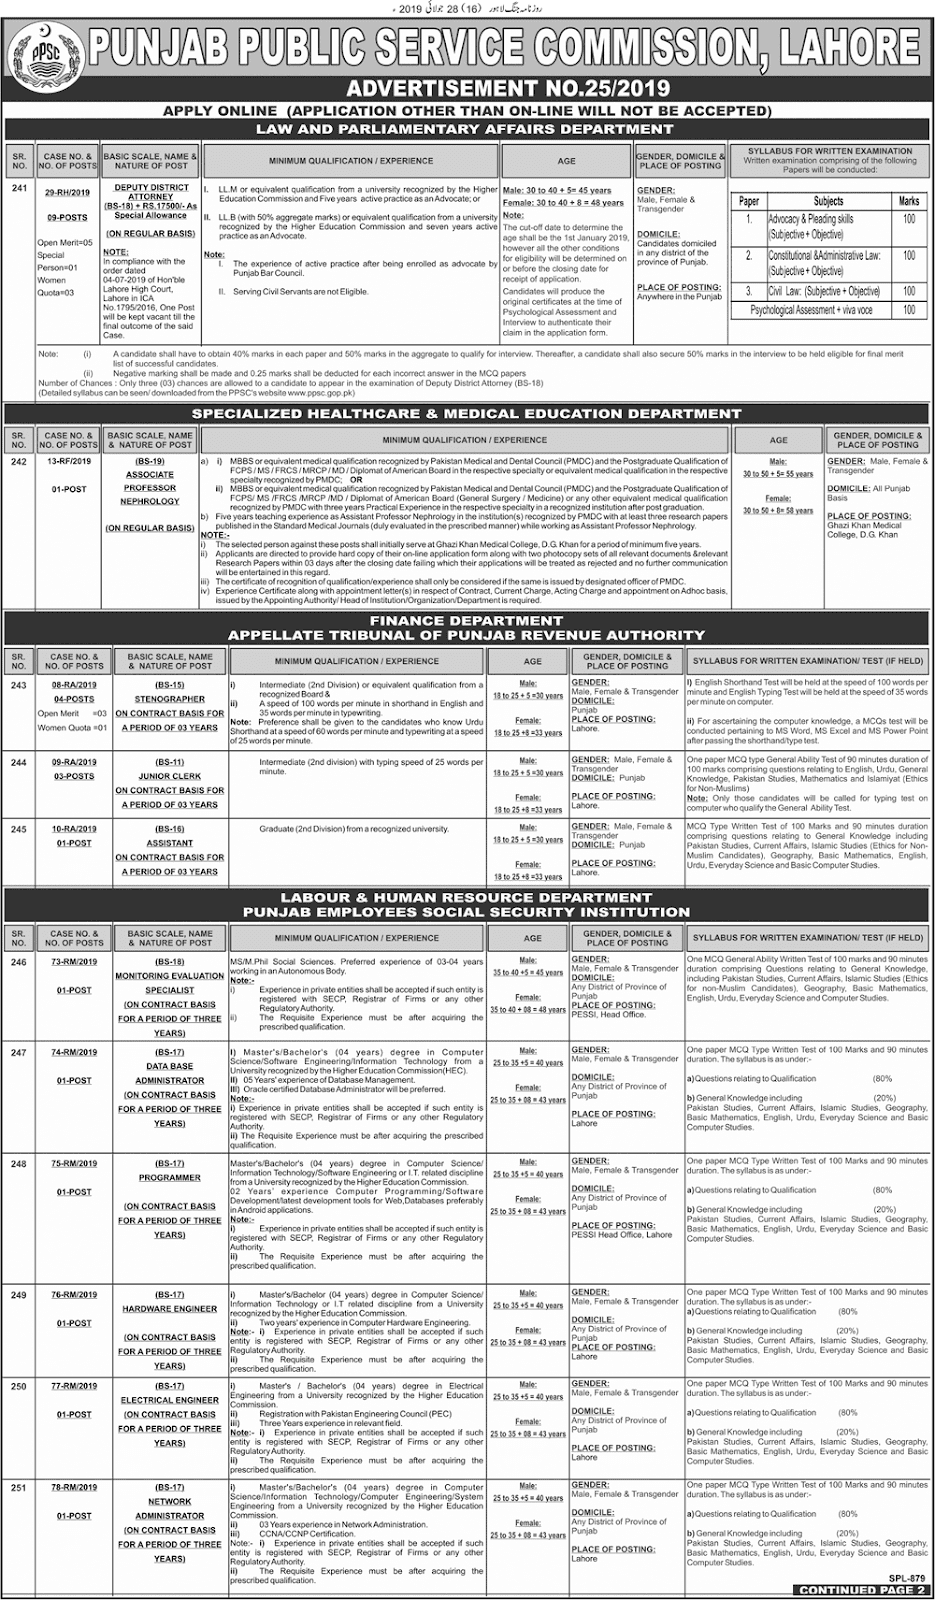 PPSC Advertisement 25/2019 Page No. 1/2